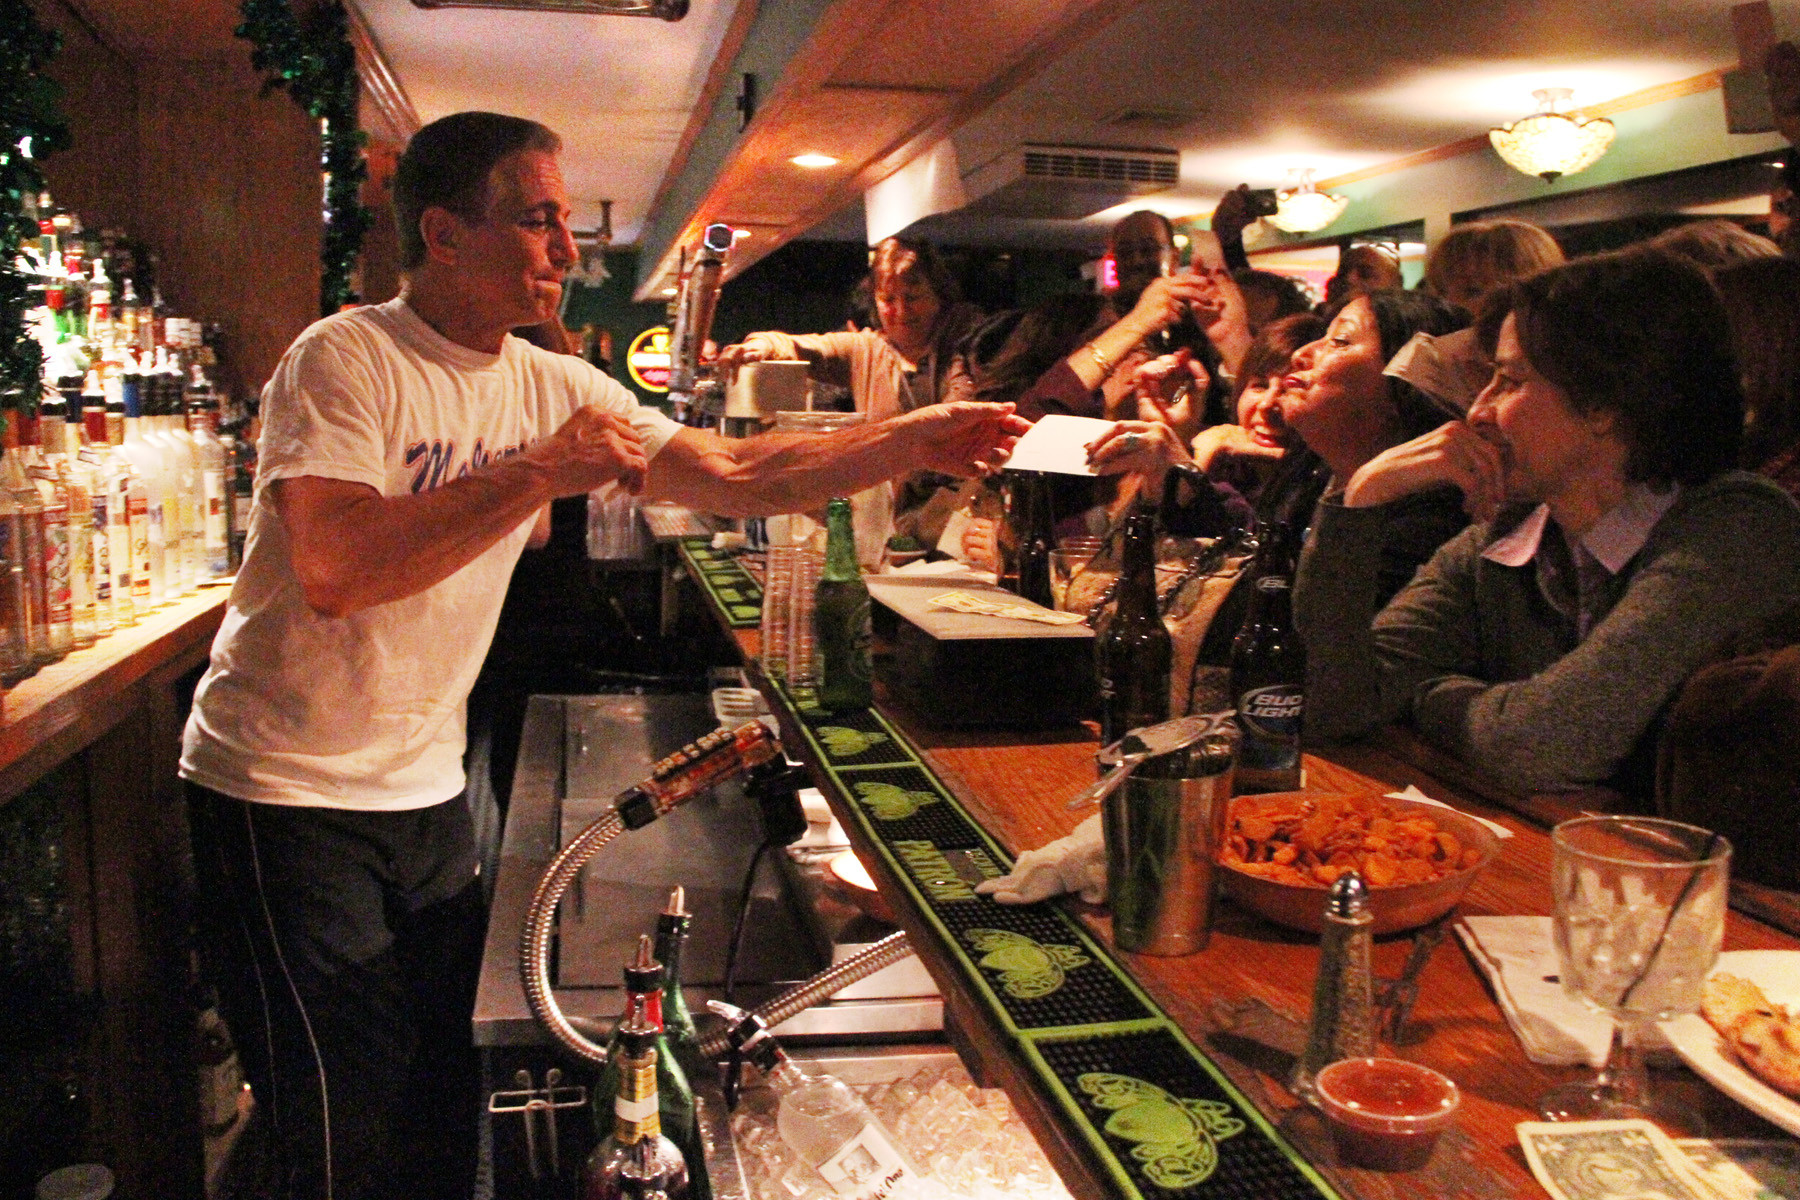 tony danza serves drinks at Connolly's Station in Malverne on March 14 at a fundraising event for students at the Malverne Middle School.